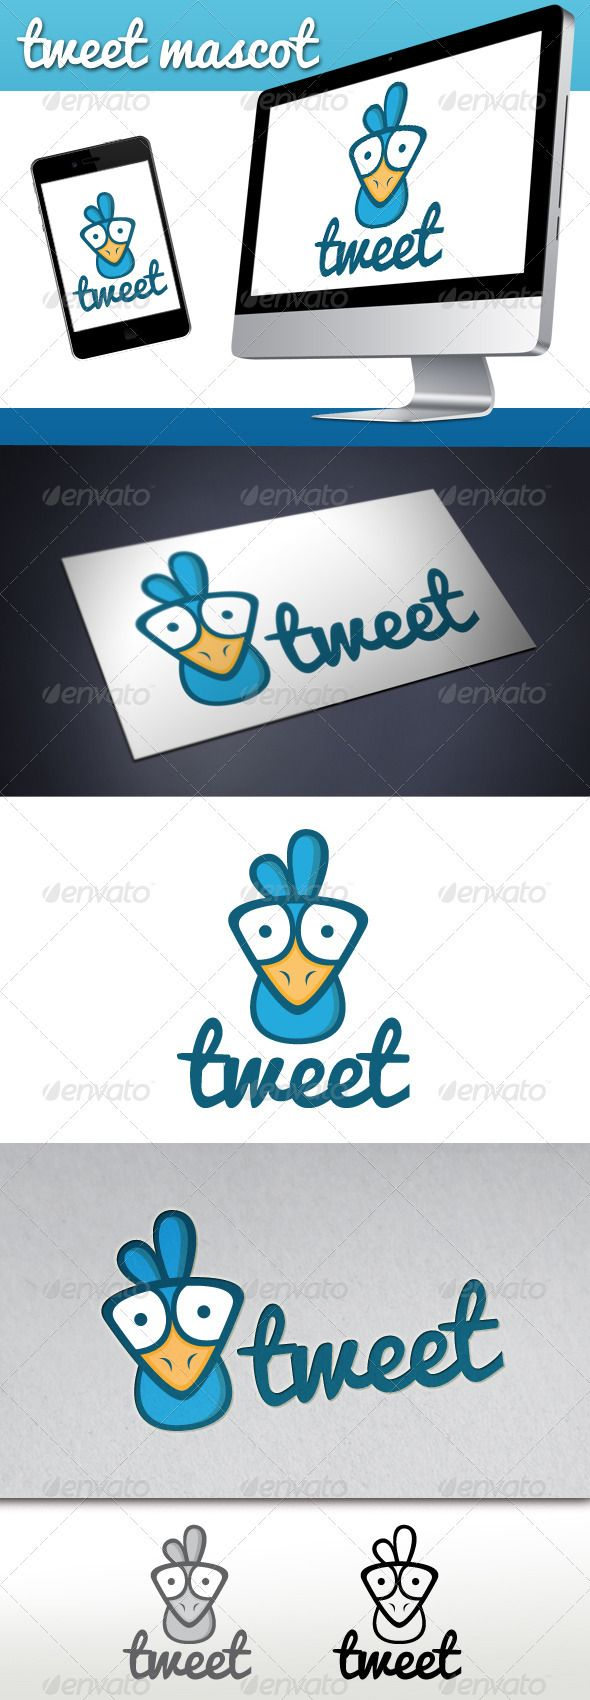 Tweet Bird Mascot Logo Logos Cartoon And Typography